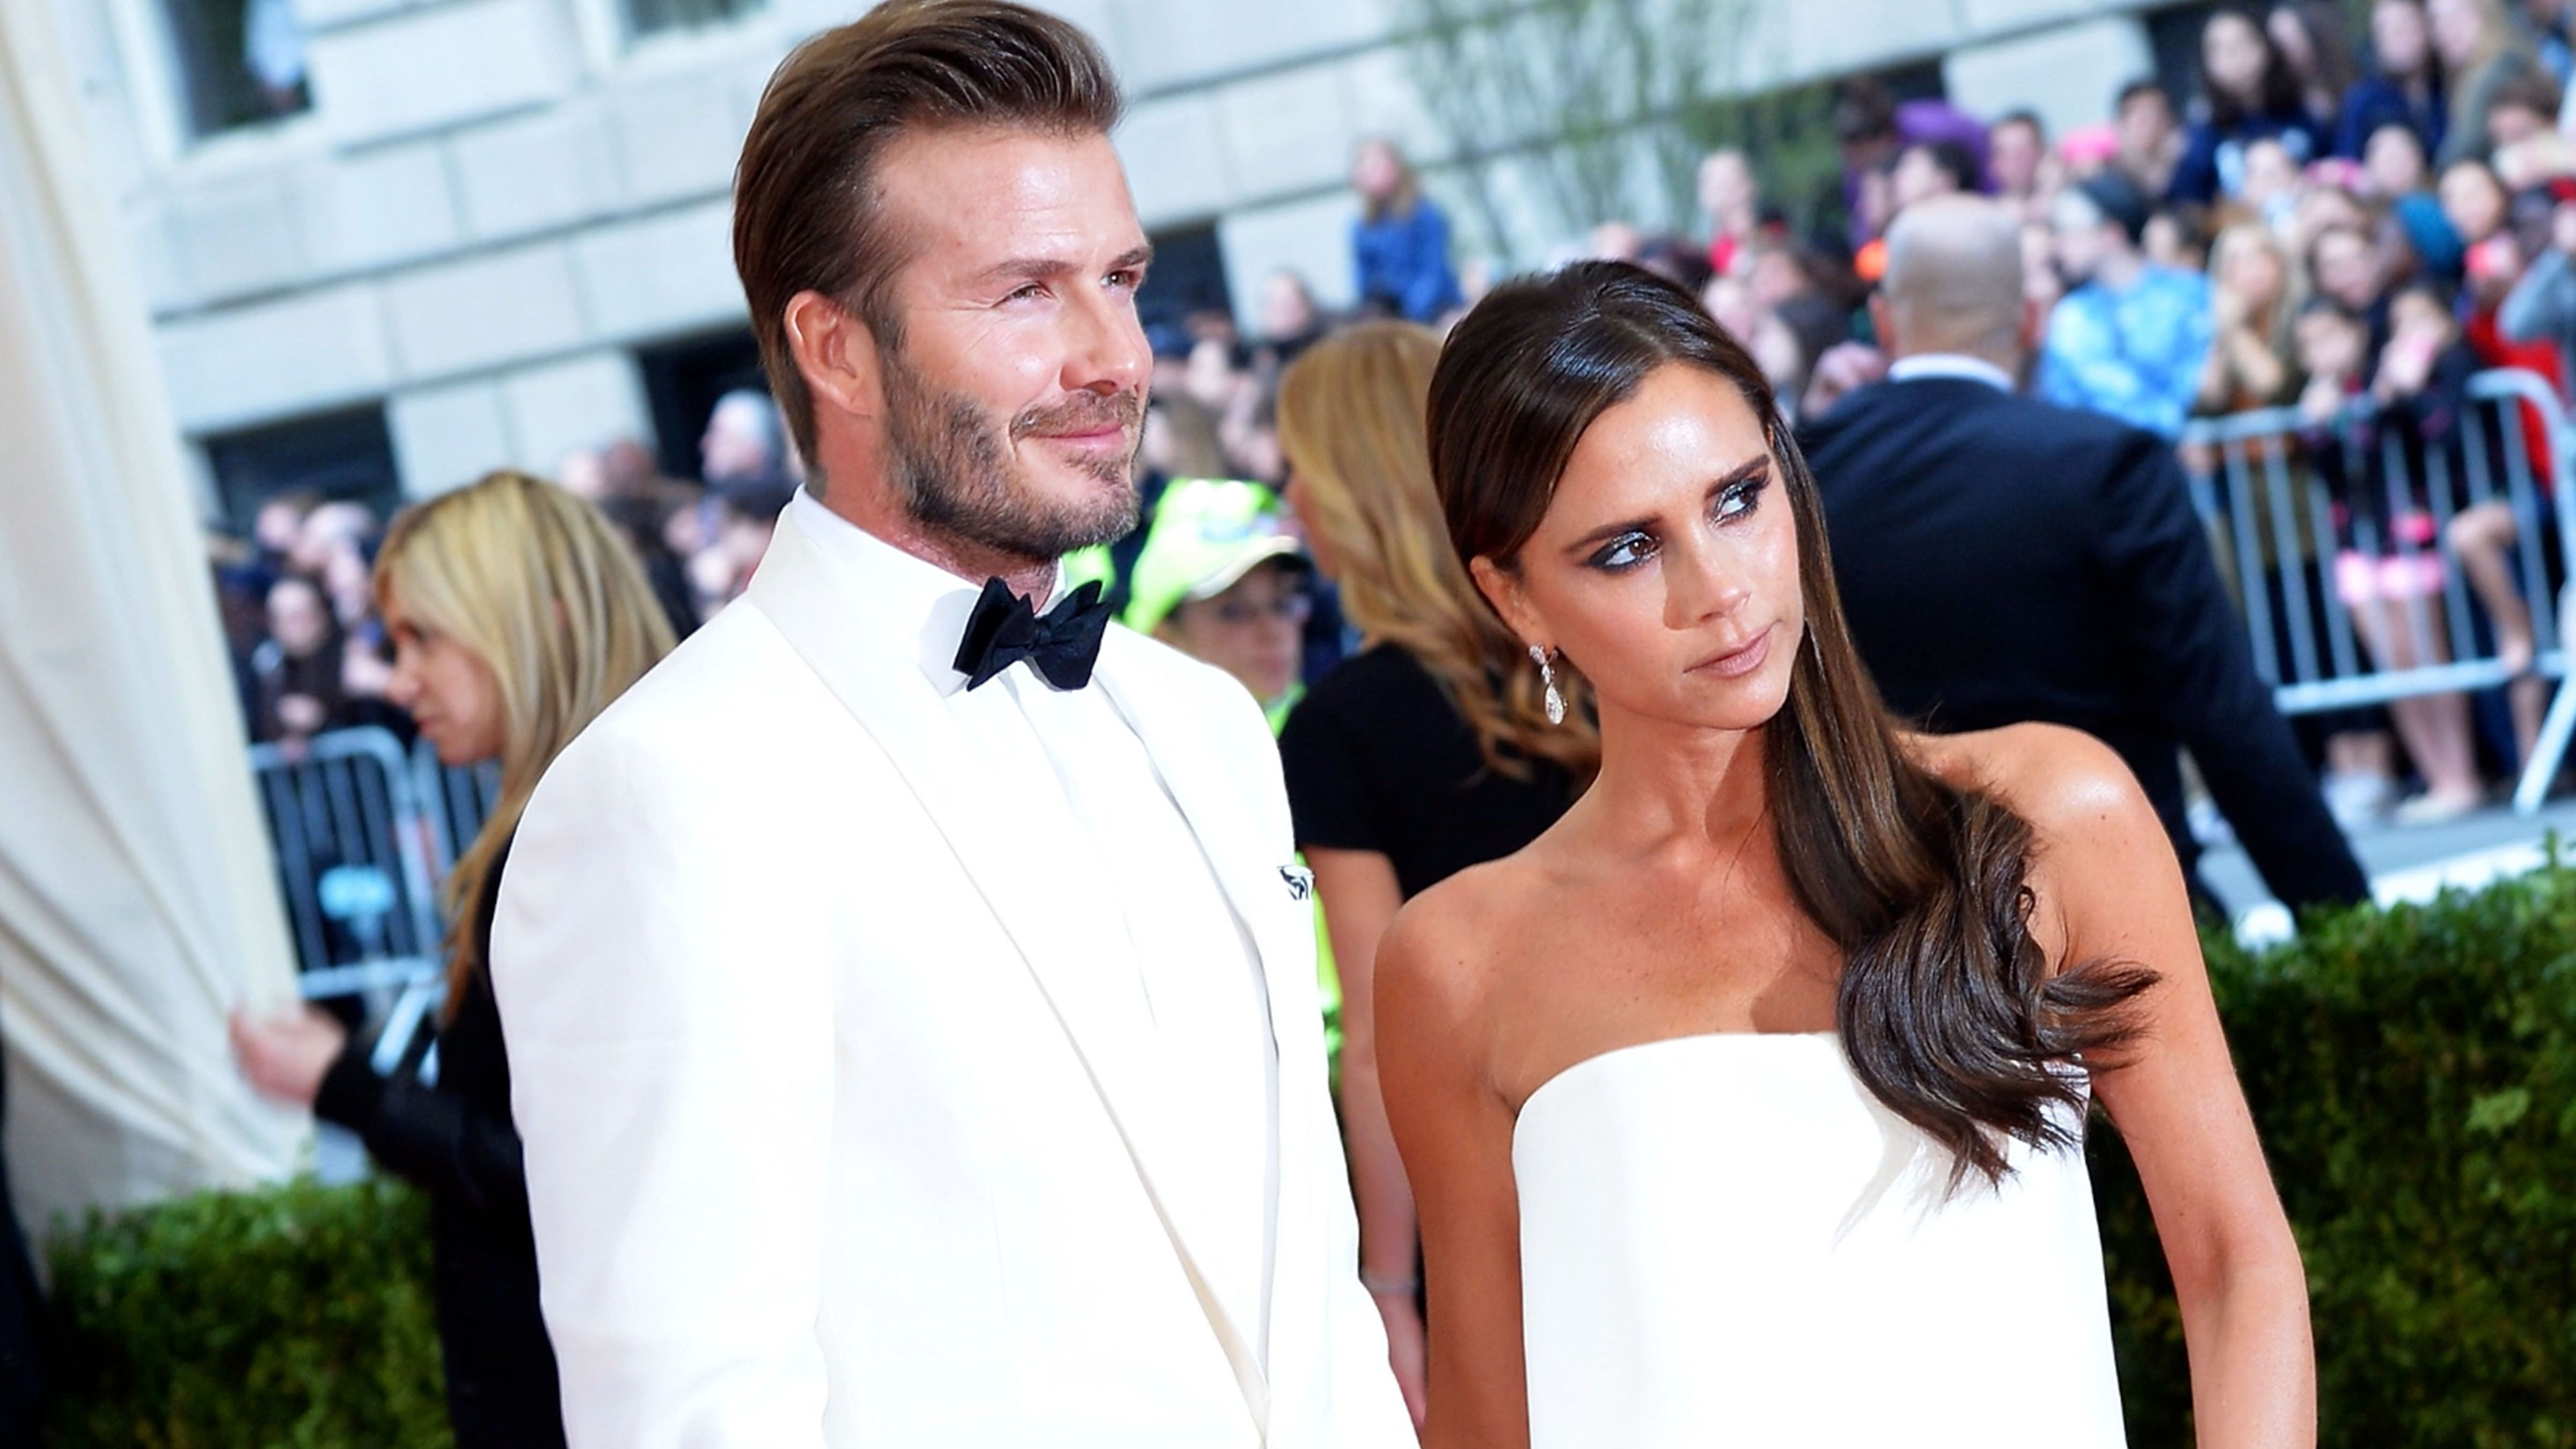 Victoria Beckham's 45th Birthday Party Was a Chic Family Affair and I'm Sad I Wasn't Invited